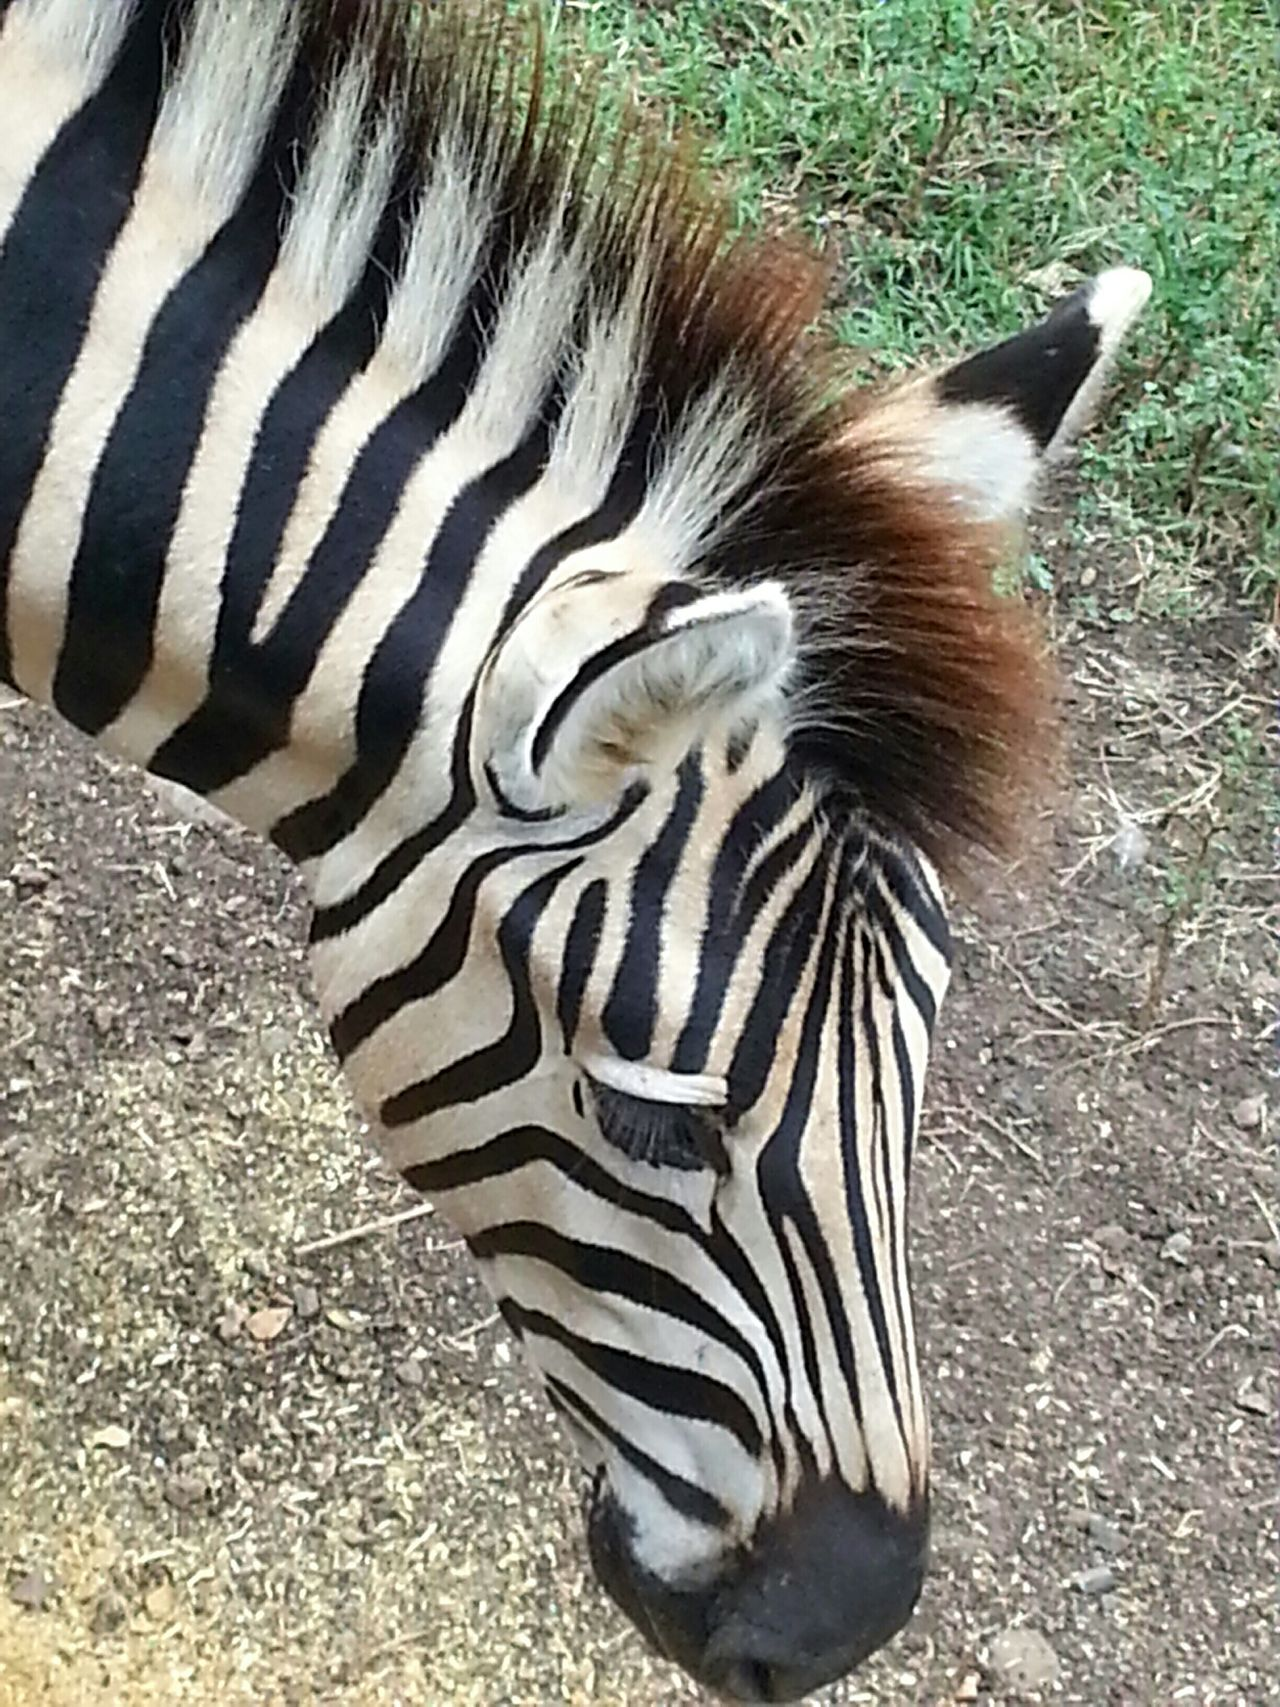 Zebra Nature Closeup Black & White EyeEm_crew EyeEm Best Shots - No Edit